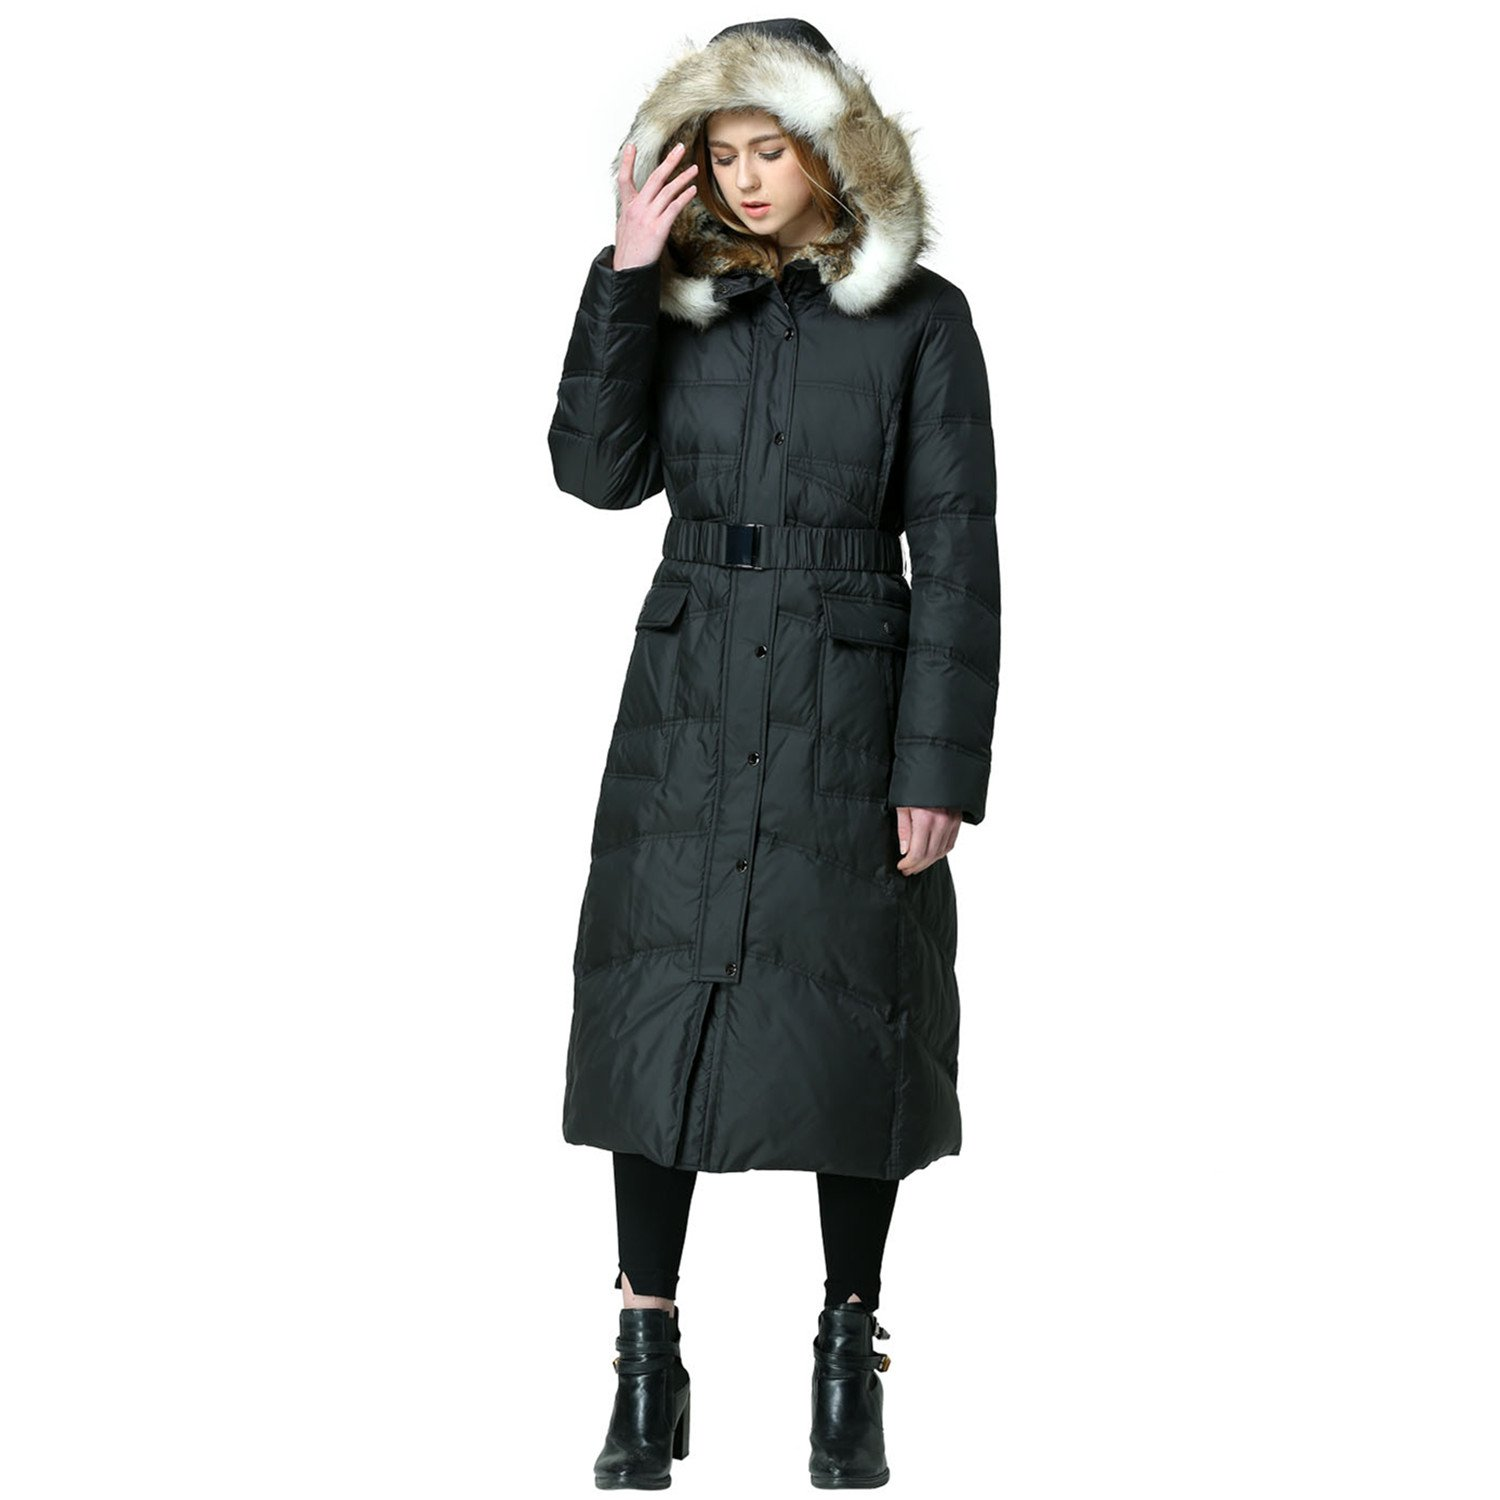 EOVVIO Women's Plus Long Thickened Faux Fur Hooded Down Jacket Coat (L, Black)